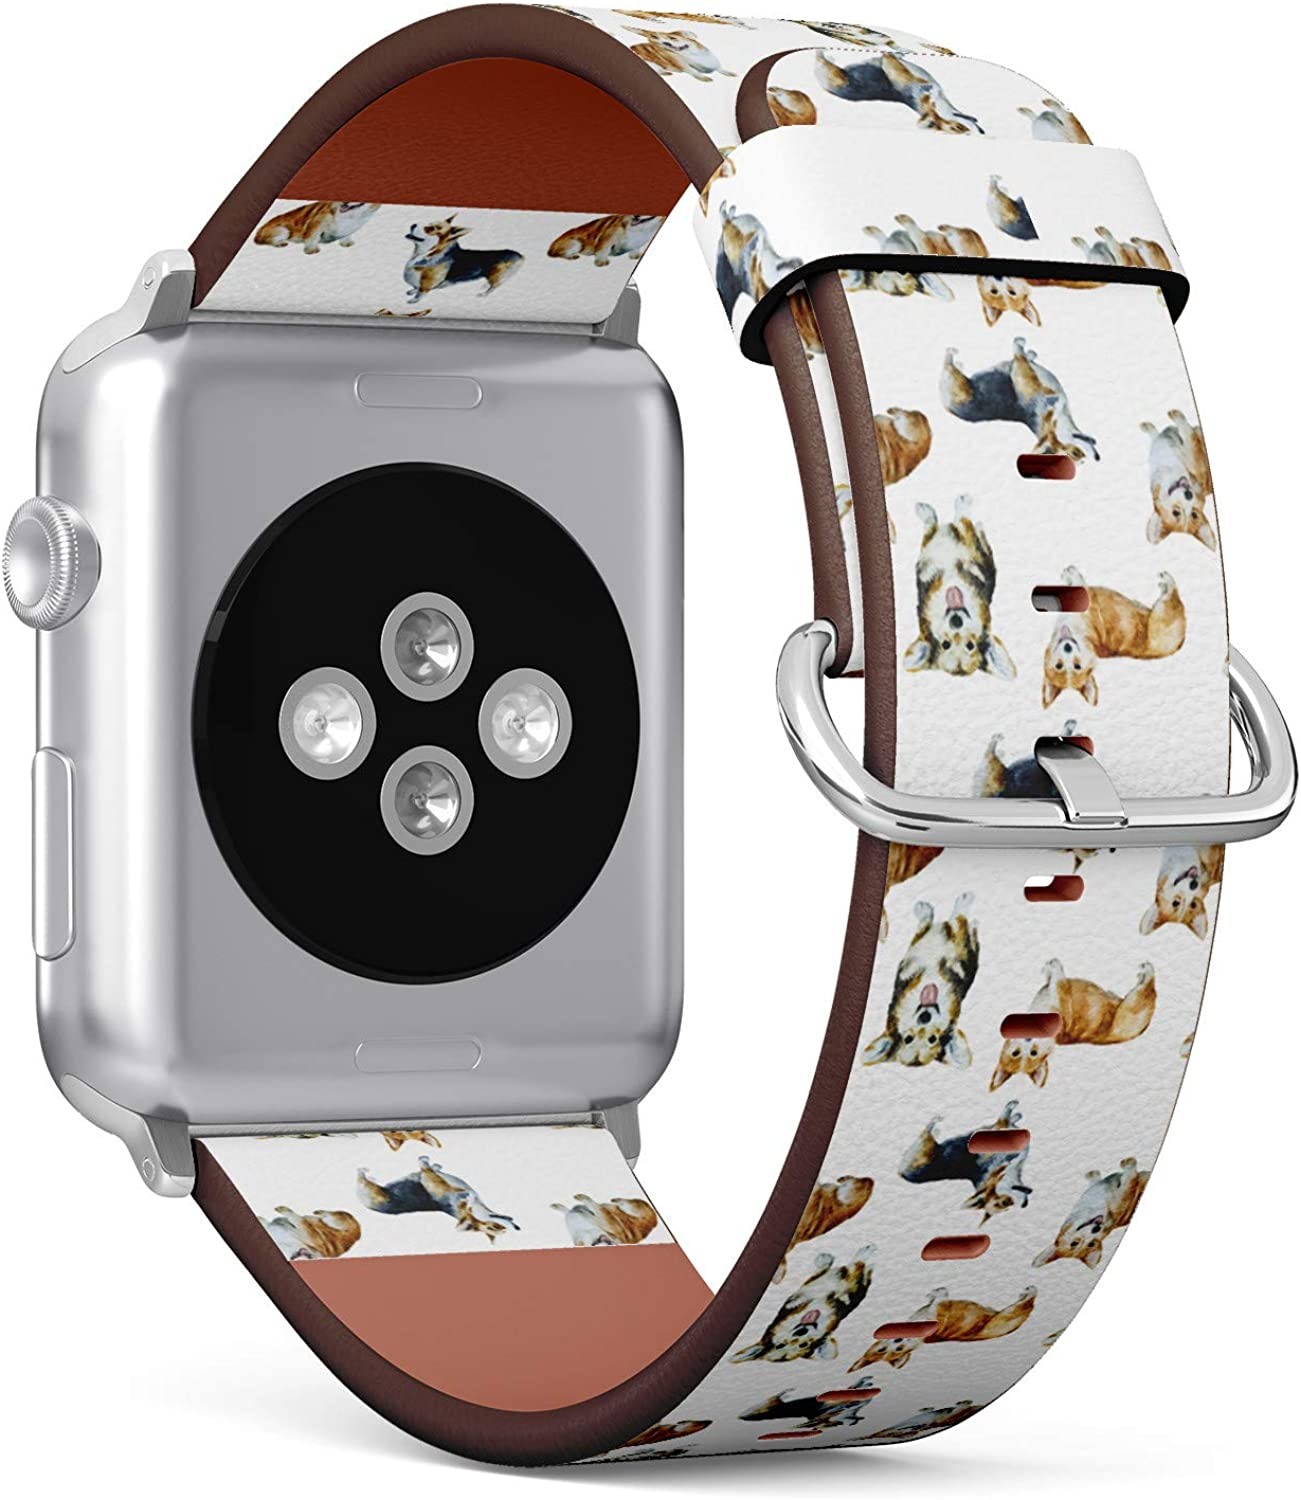 Cute Corgi Dog Pattern - Patterned Leather Wristband Strap Compatible with Apple Watch Series 4/3/2/1 38mm/40mm